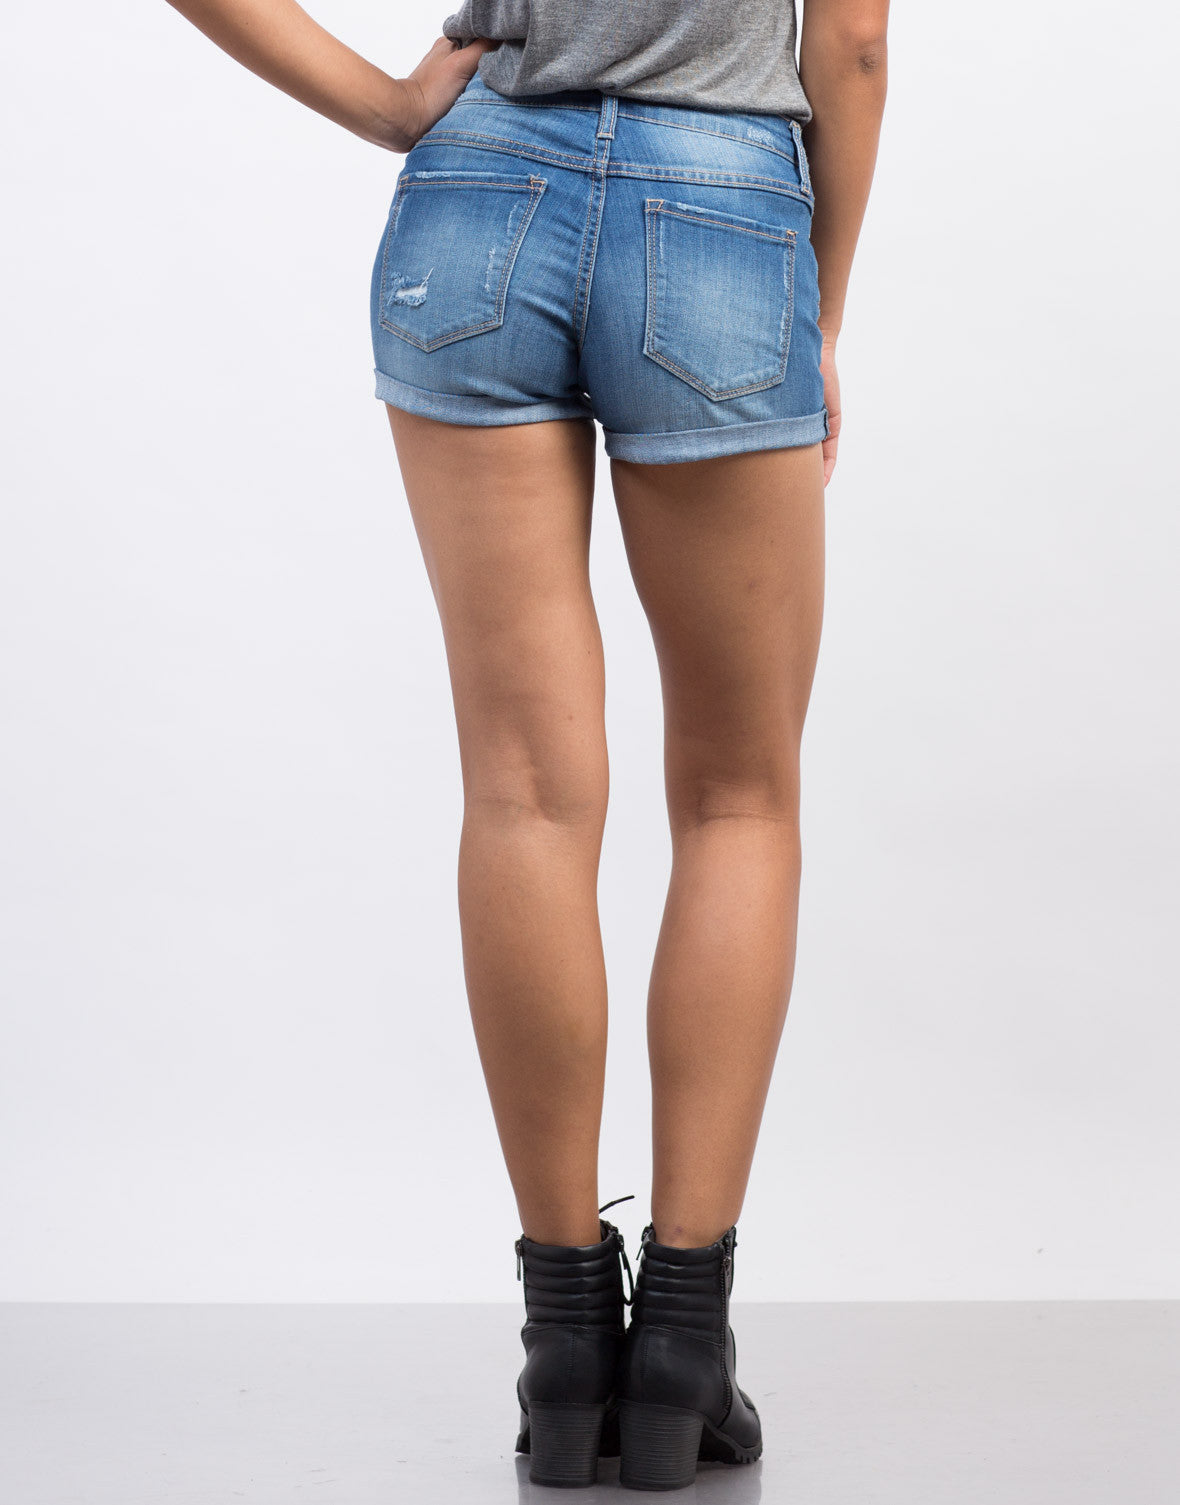 Back View of Rolled Up Denim Shorts